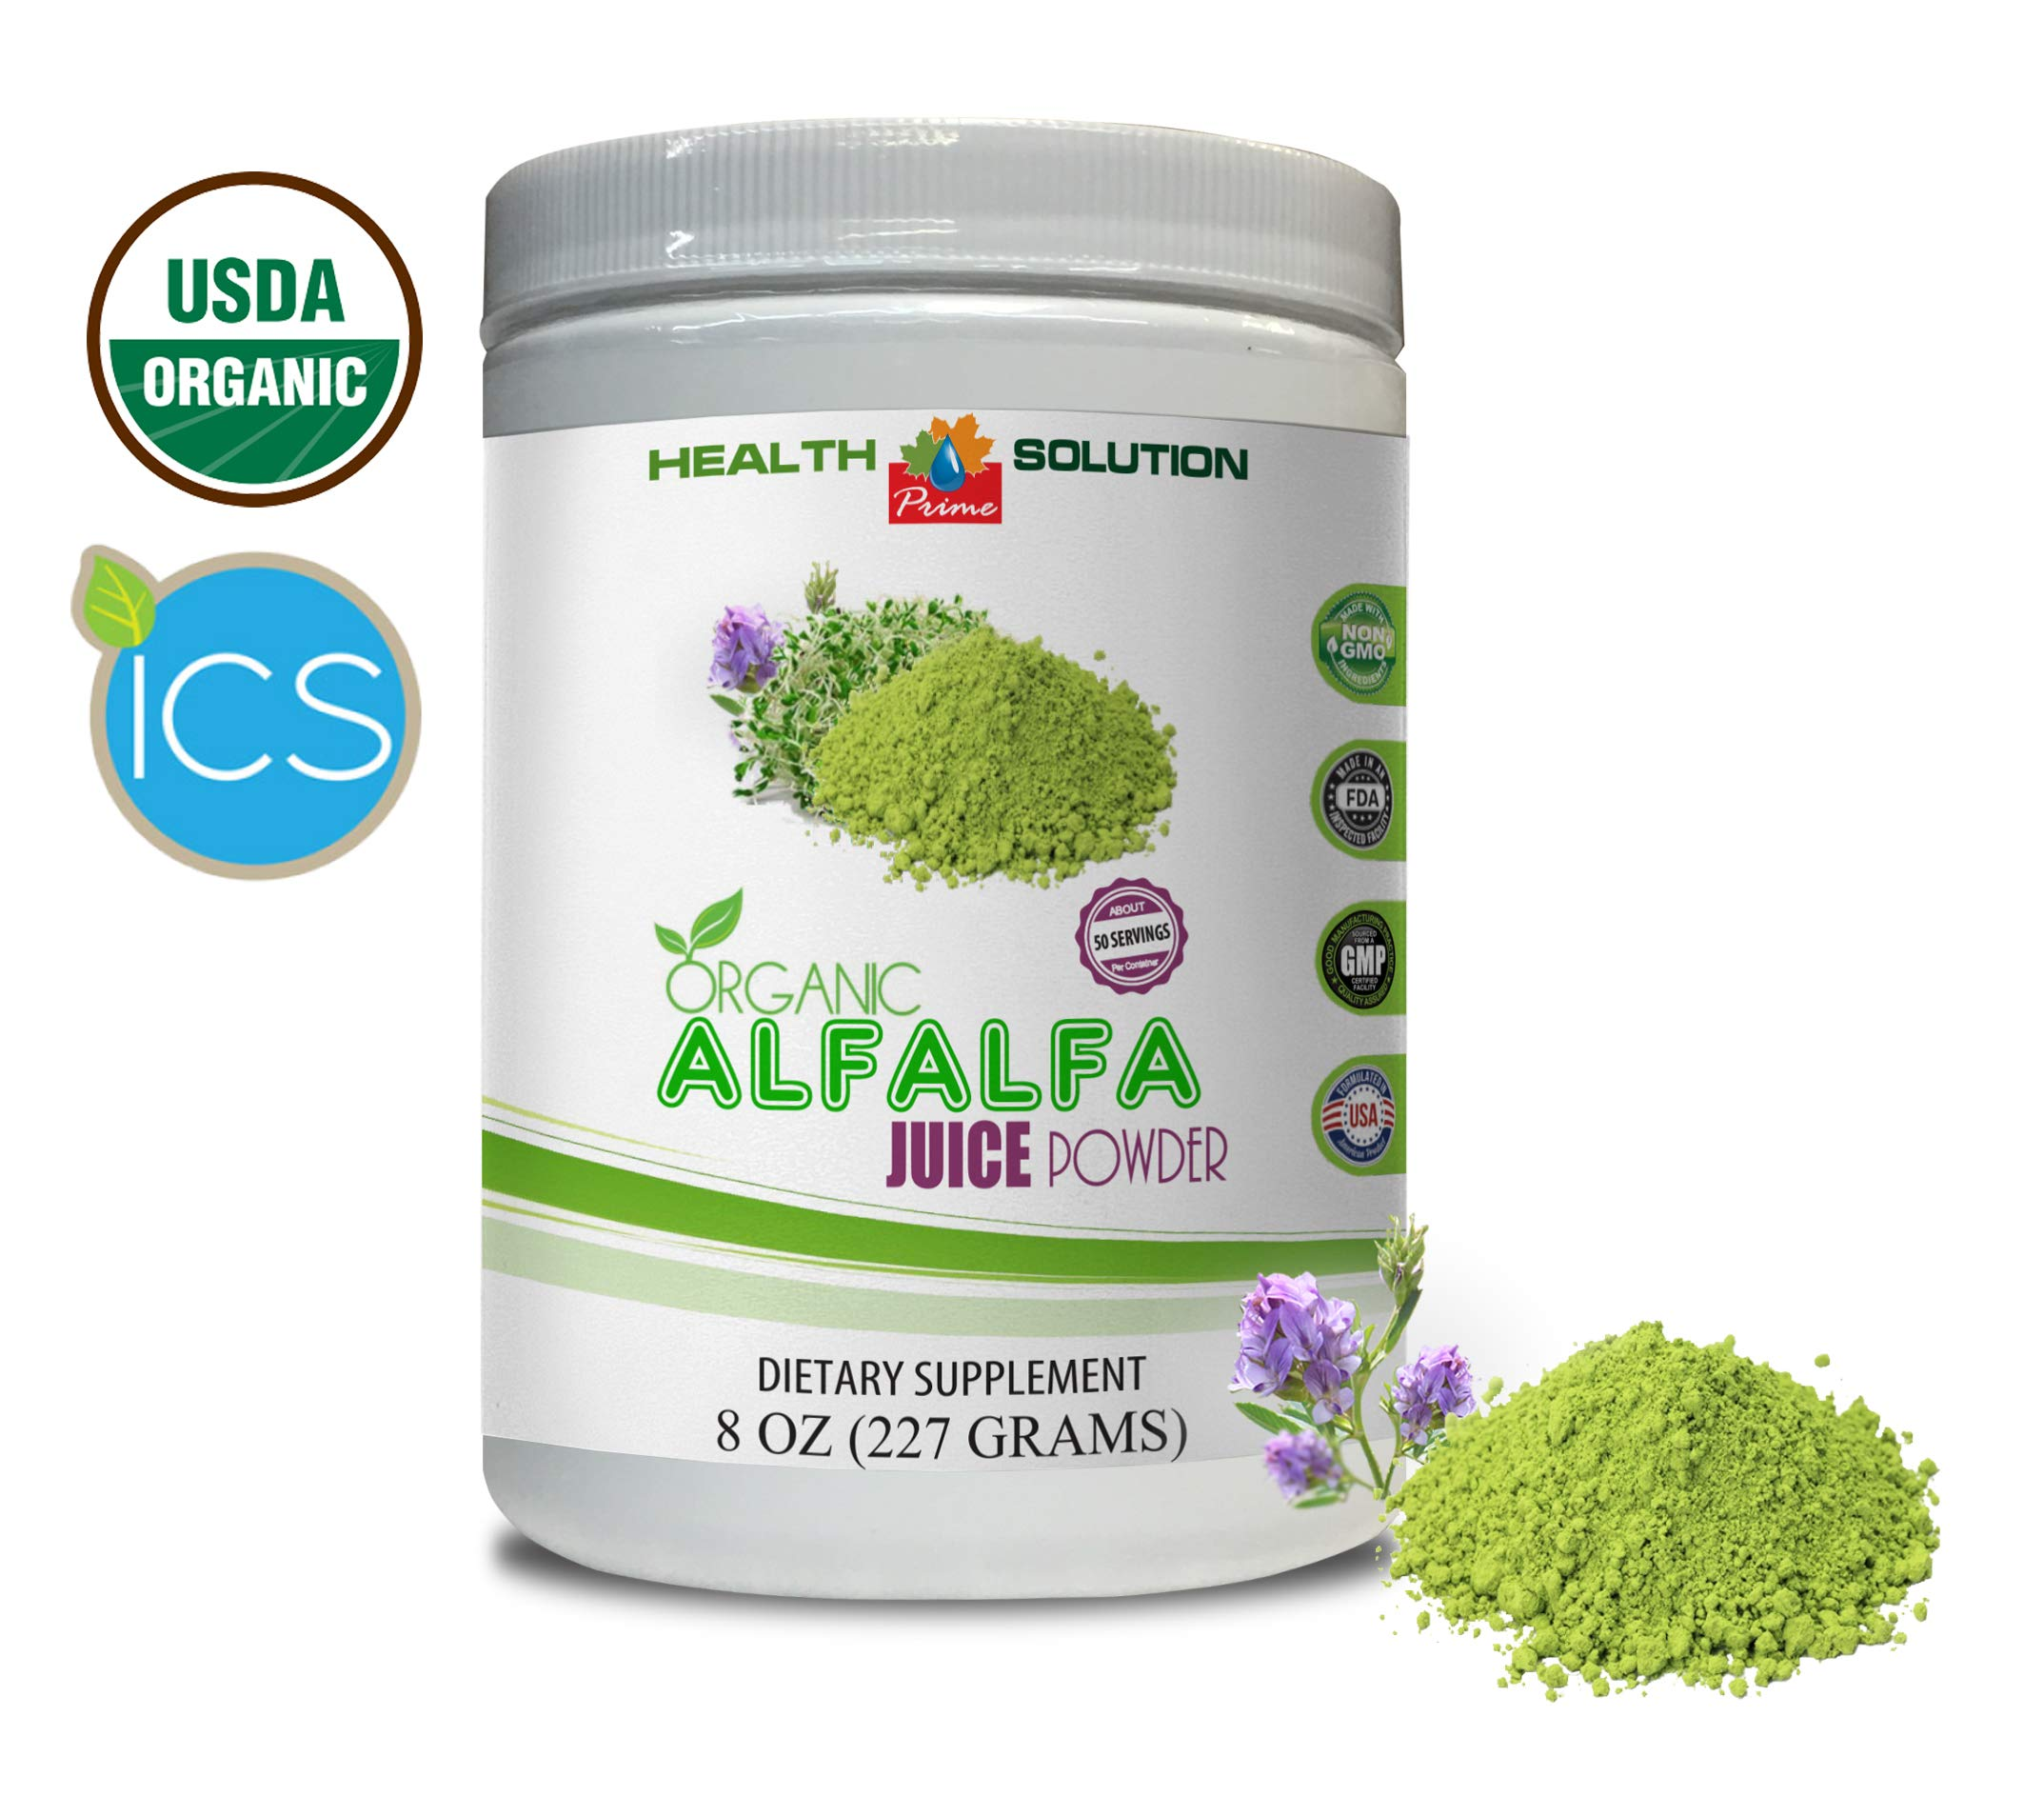 Immune System Natural - Organic Alfalfa Juice Powder - Alfalfa Juice Powder Organic - 1 Can 8 OZ (50 Servings)